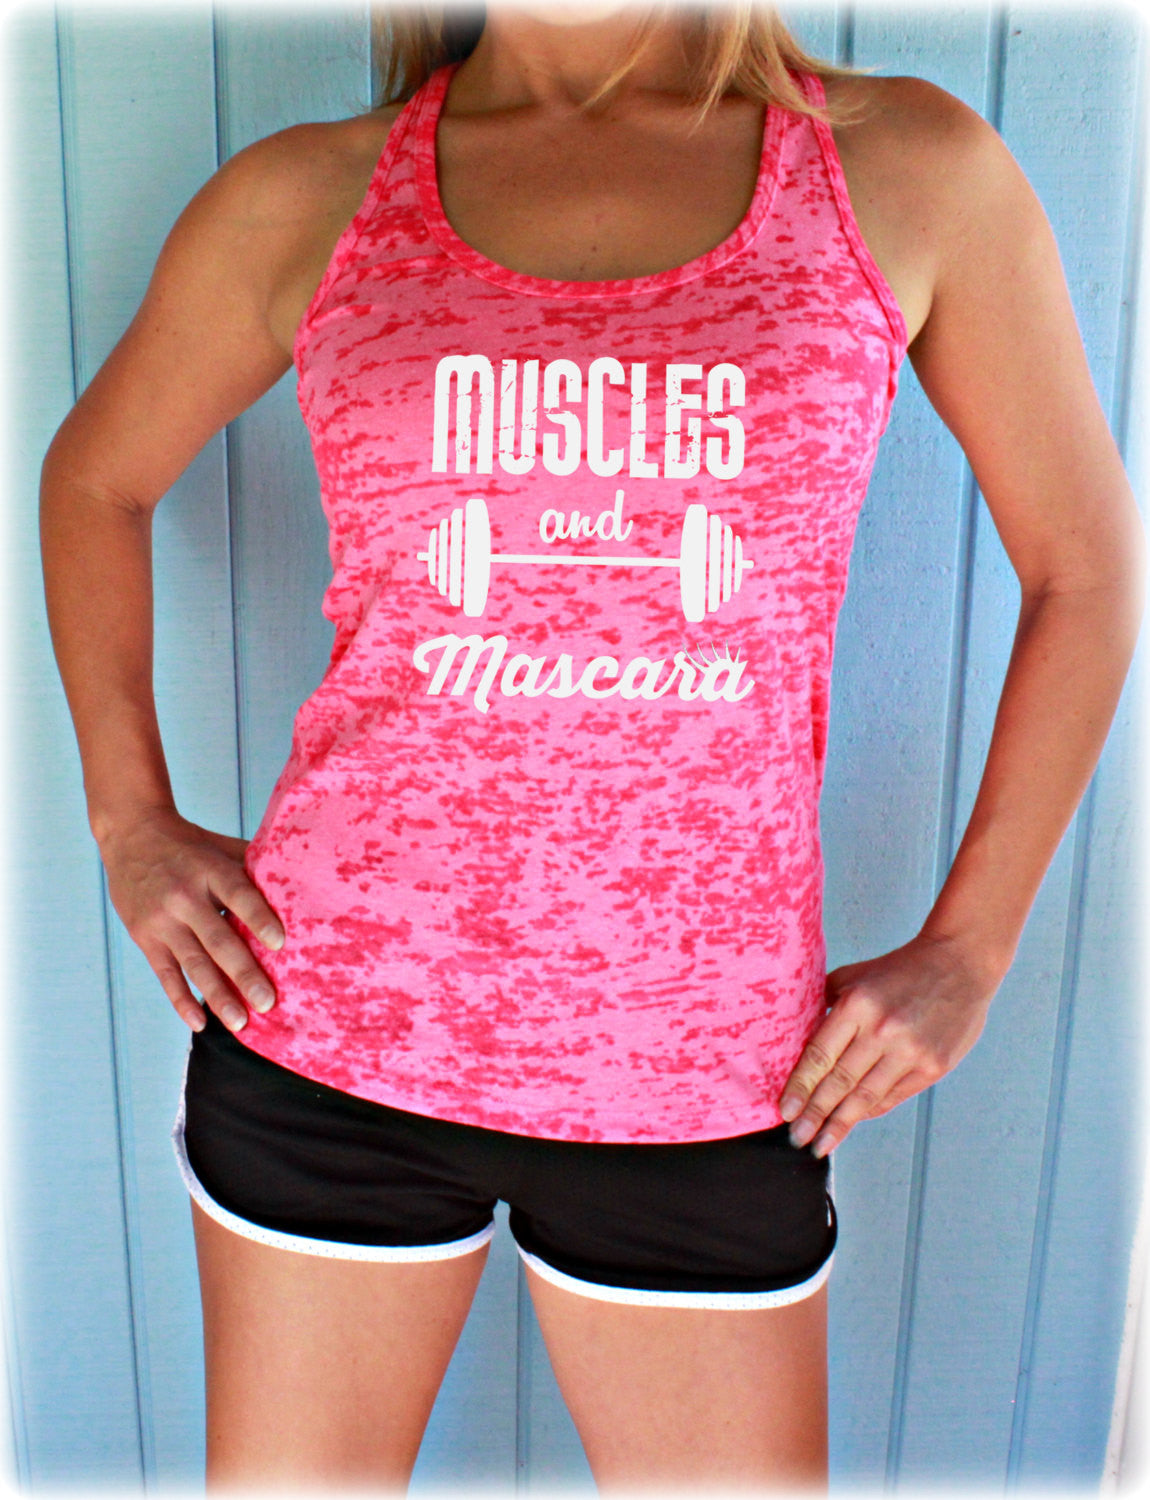 Workout Burnout Tank Top. Muscles and Mascara Fitness Shirt. Womens Inspirational Clothing.